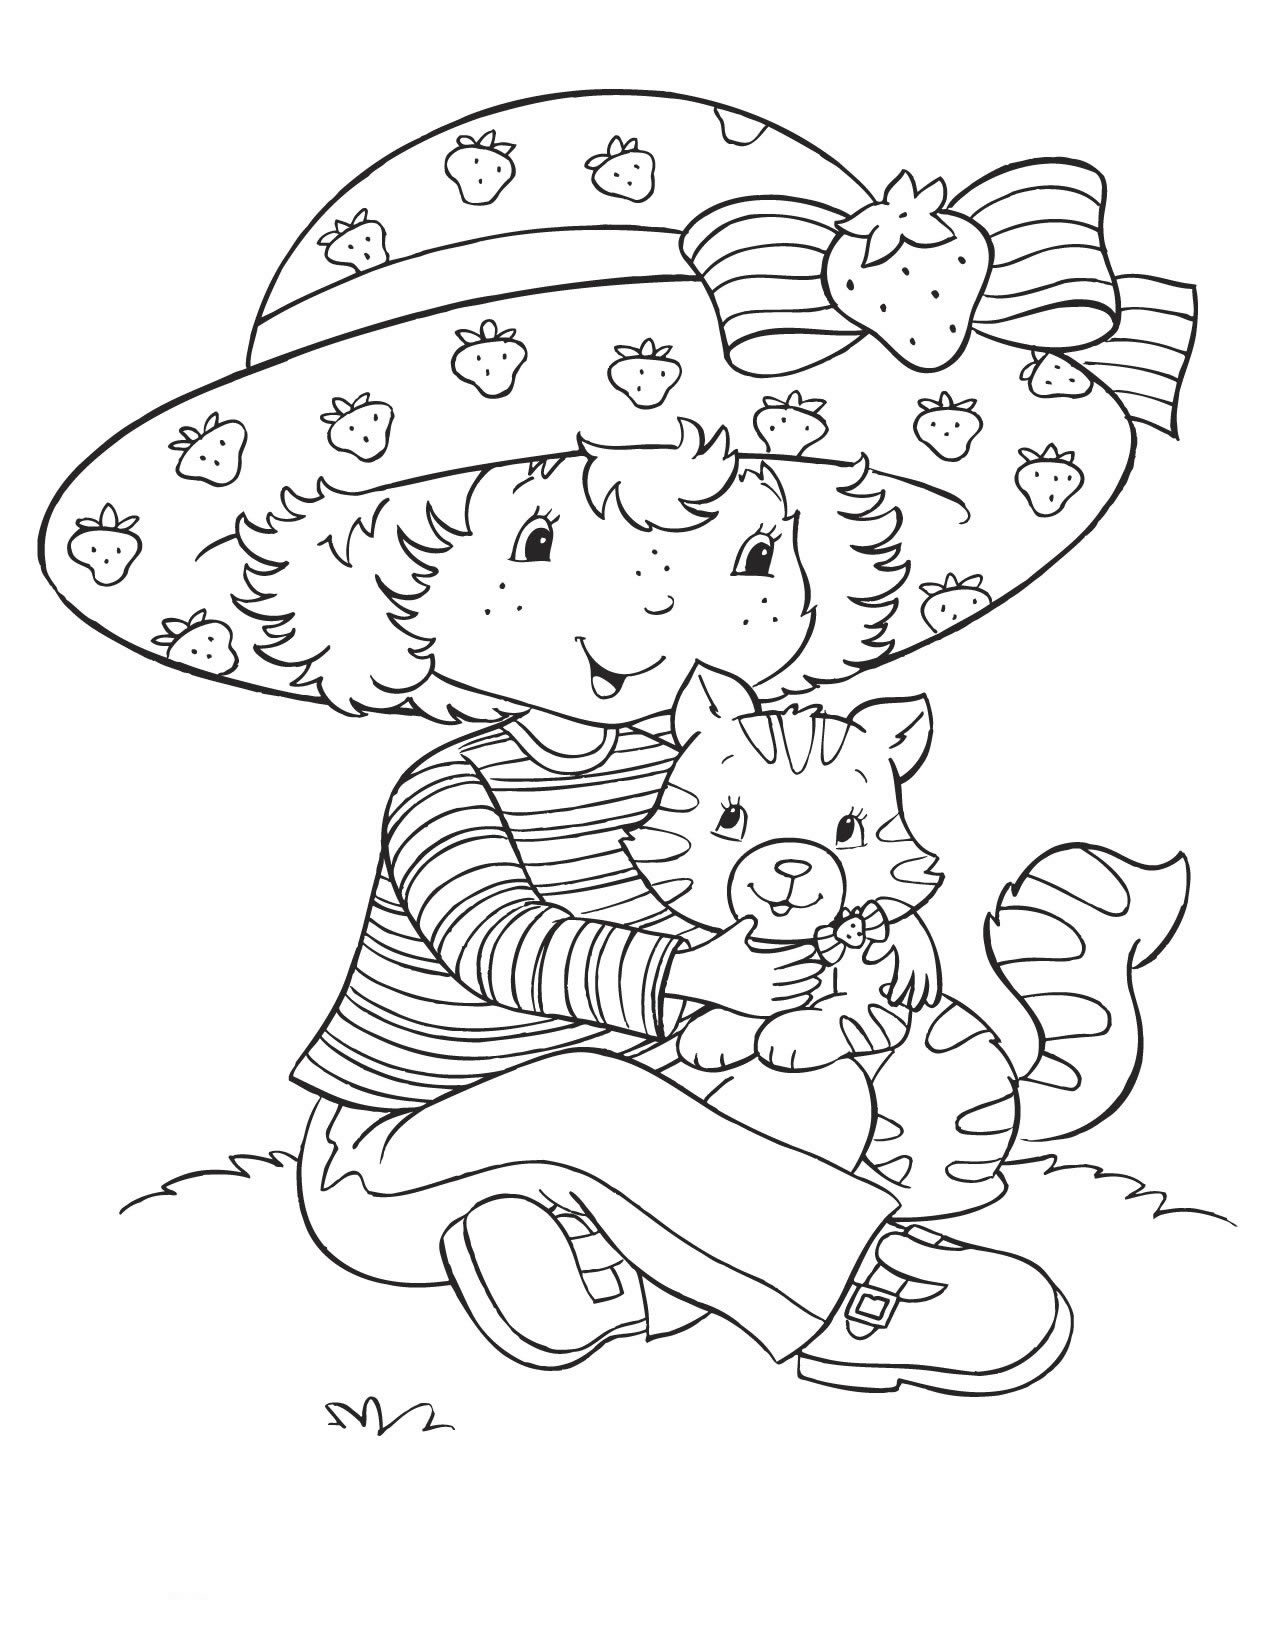 strawberry shortcake coloring pages characters - photo#3